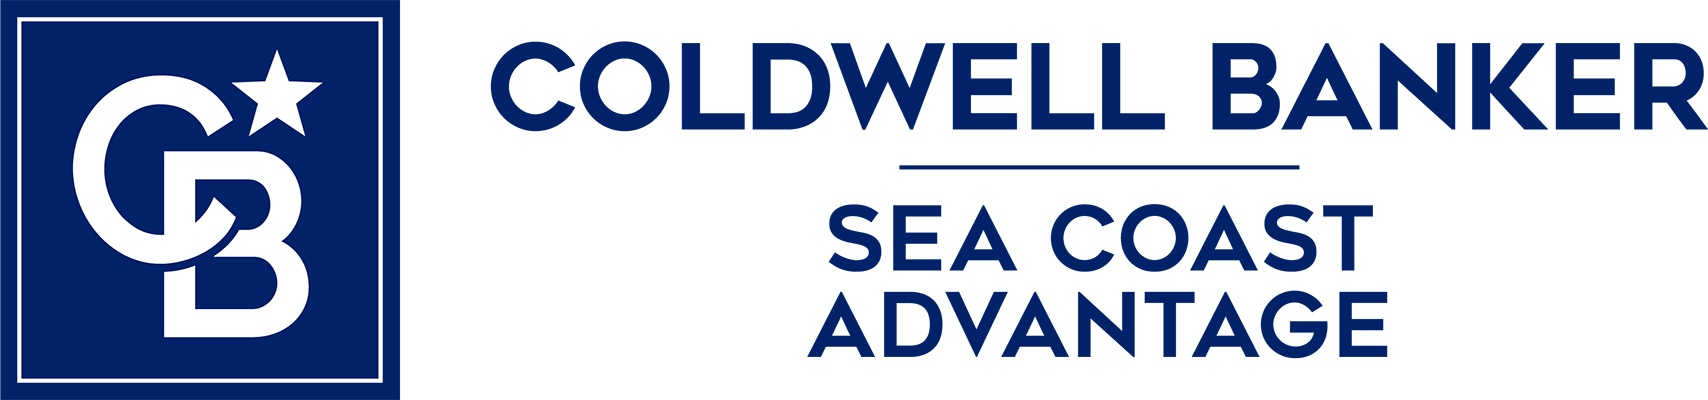 Robert Howell - Coldwell Banker Sea Coast Advantage Realty